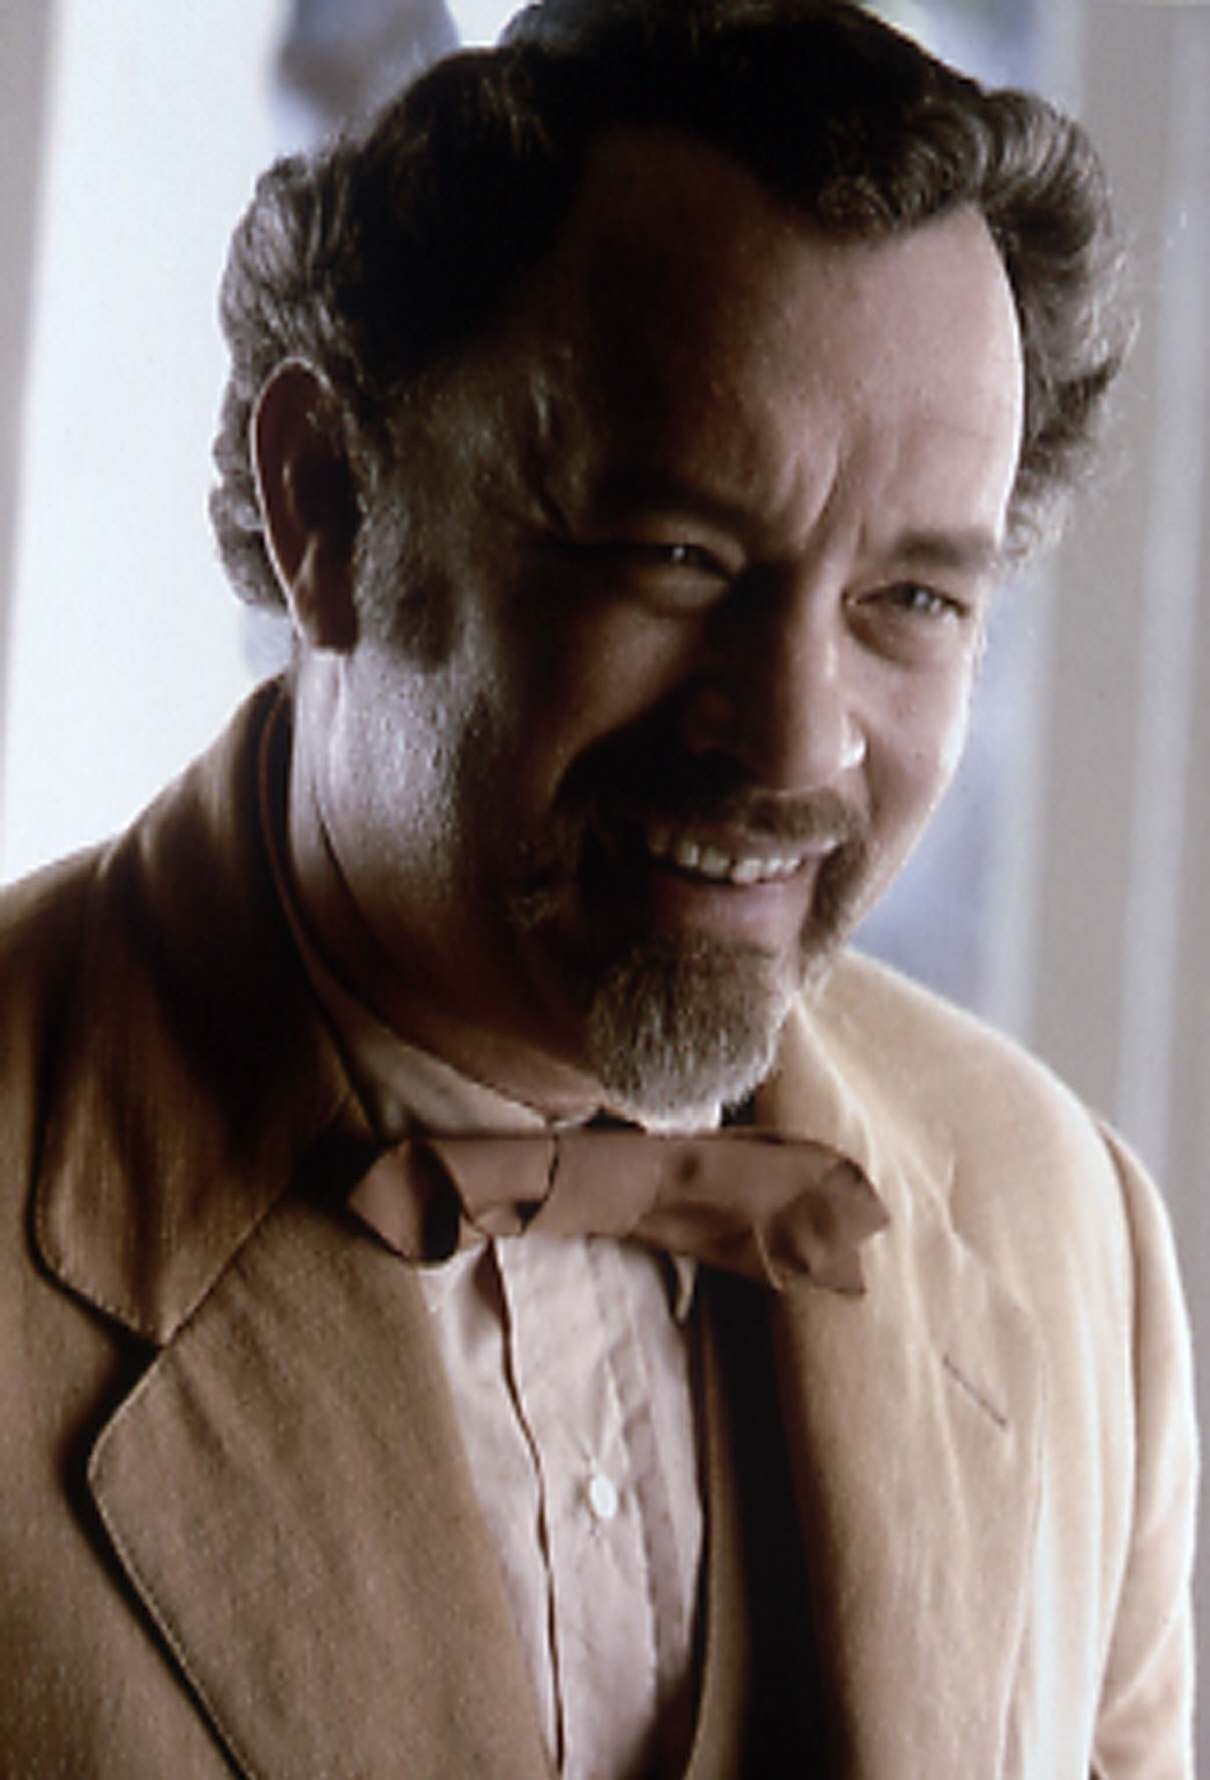 Tom Hanks in the Ladykiller